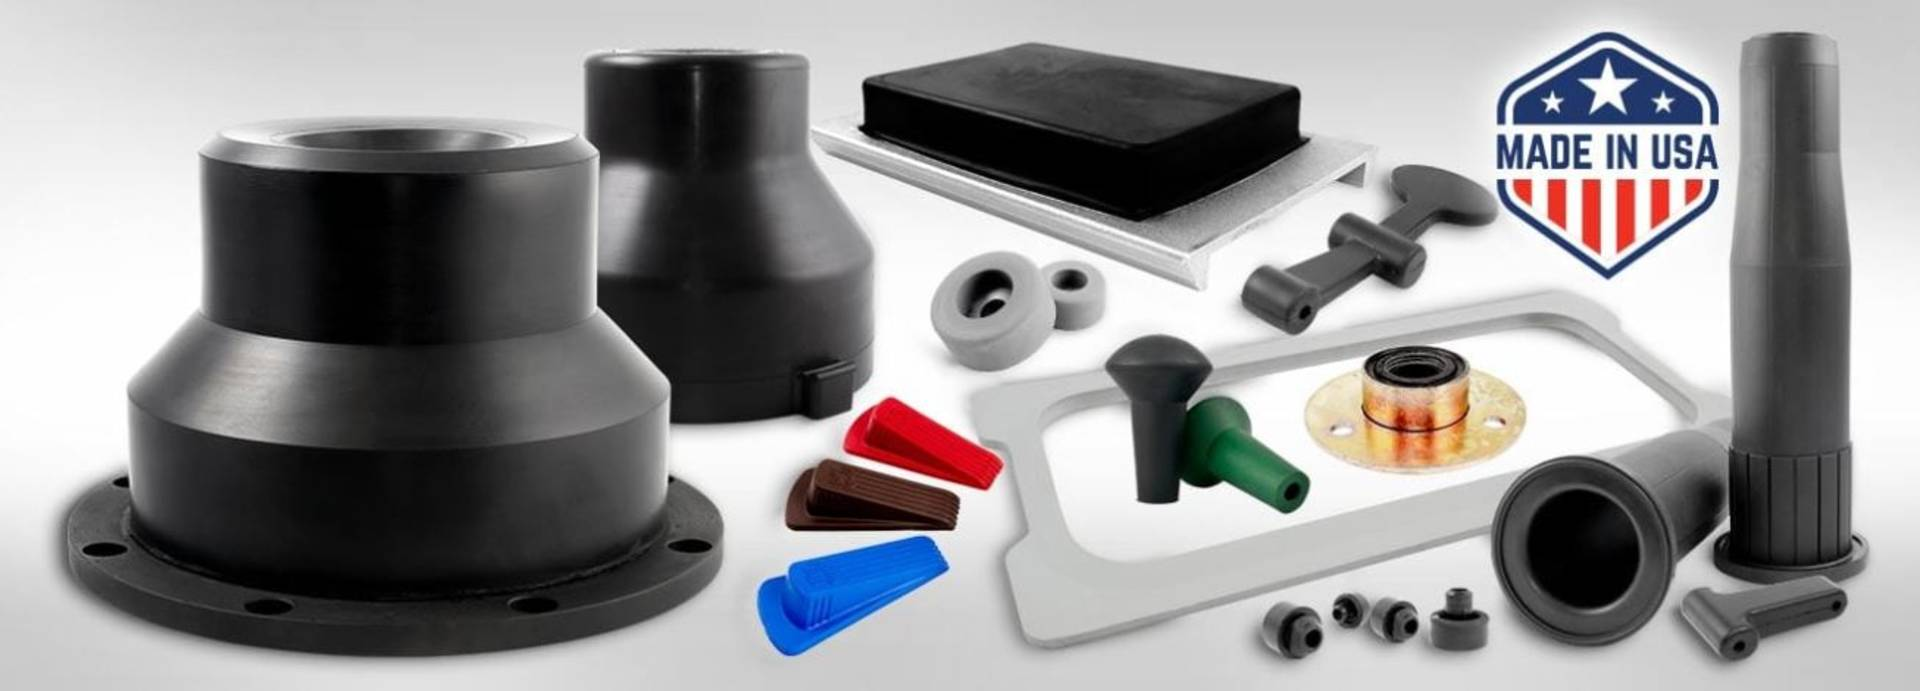 Rubber Extrusion Products Made in USA